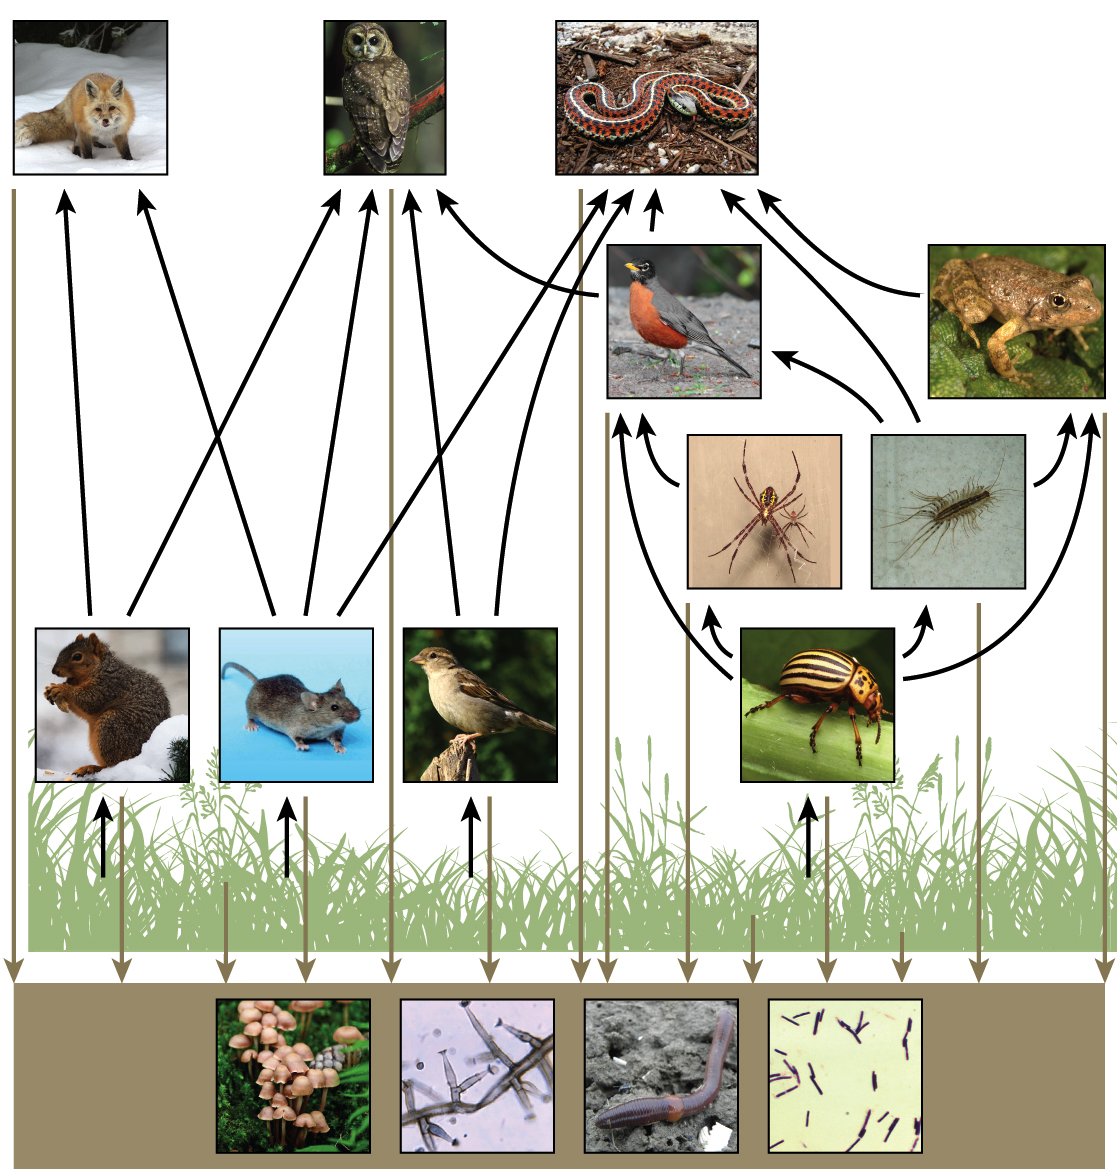 Food Chains Webs Article Ecology Khan Academy The Diagram Below Shows Inner Workings Of A Typical